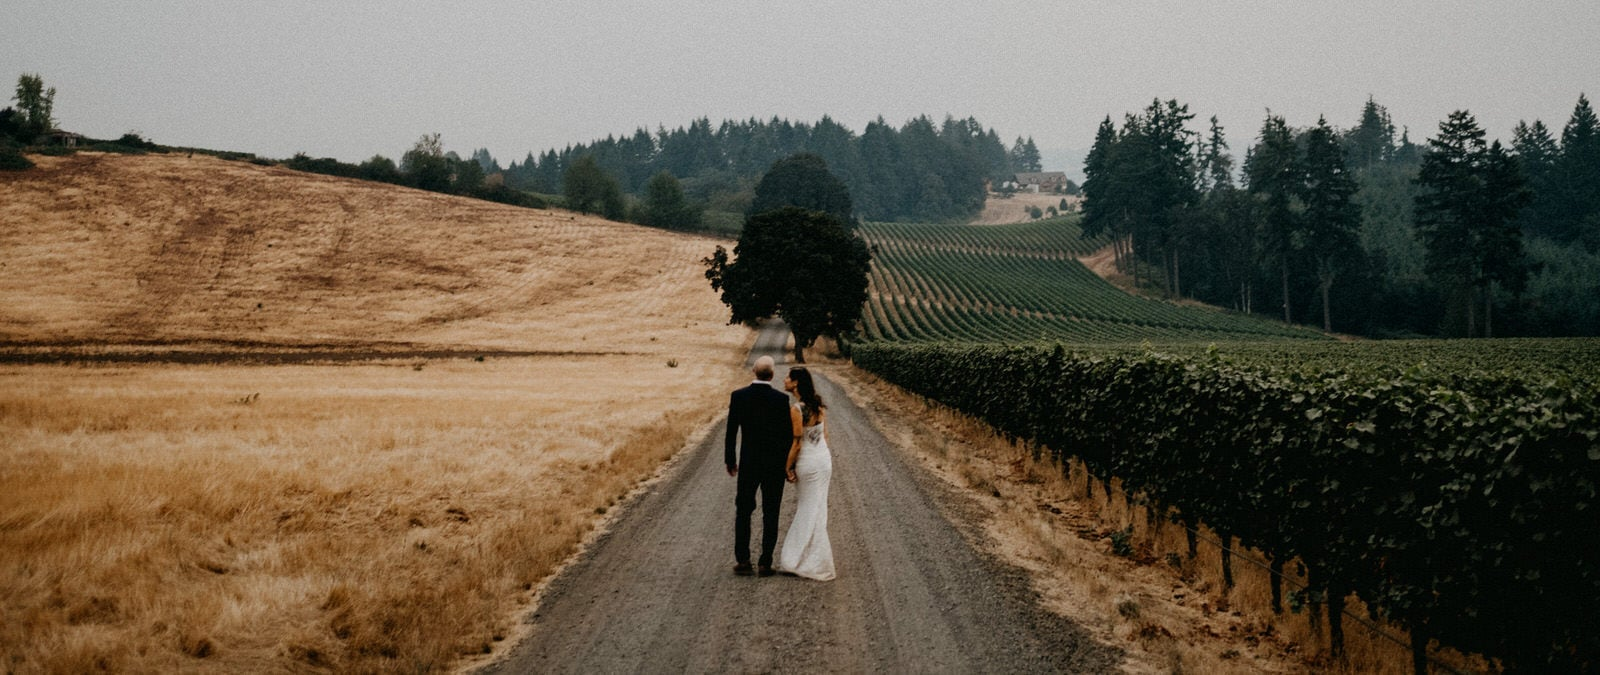 Domaine de Broglie Vineyard Wedding | Willamette Valley